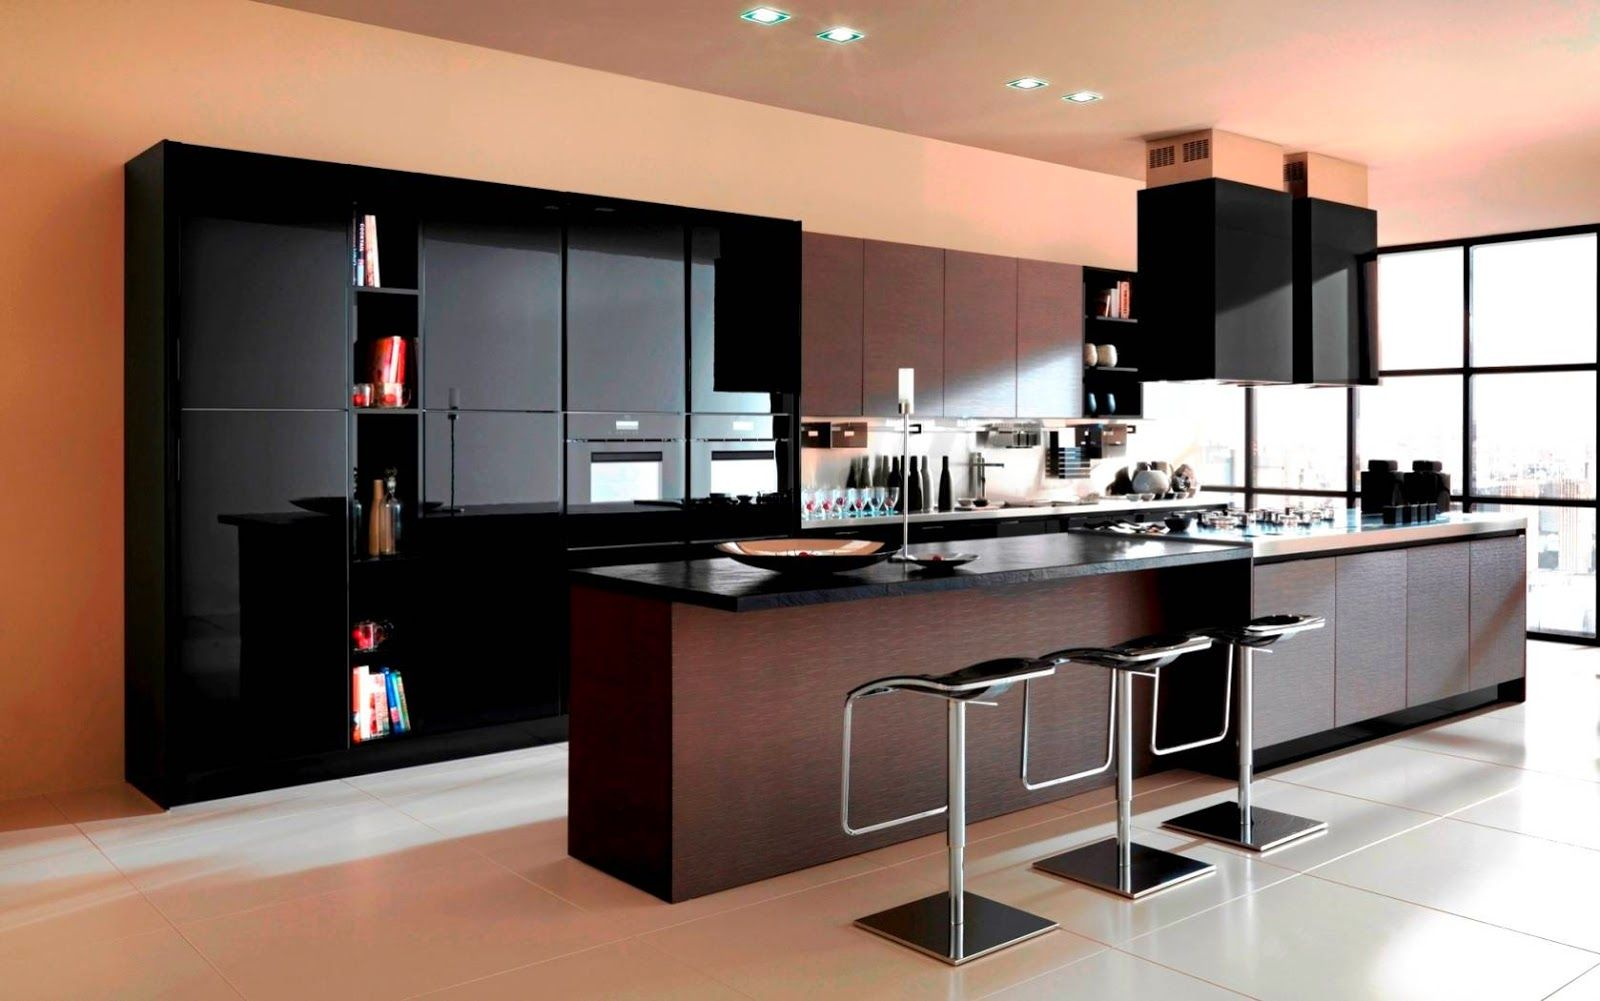 Best Kitchen In Kolkata Modular Kitchen In Kolkata Impressive Modular Kitchen Design Kolkata Decorating Inspiration